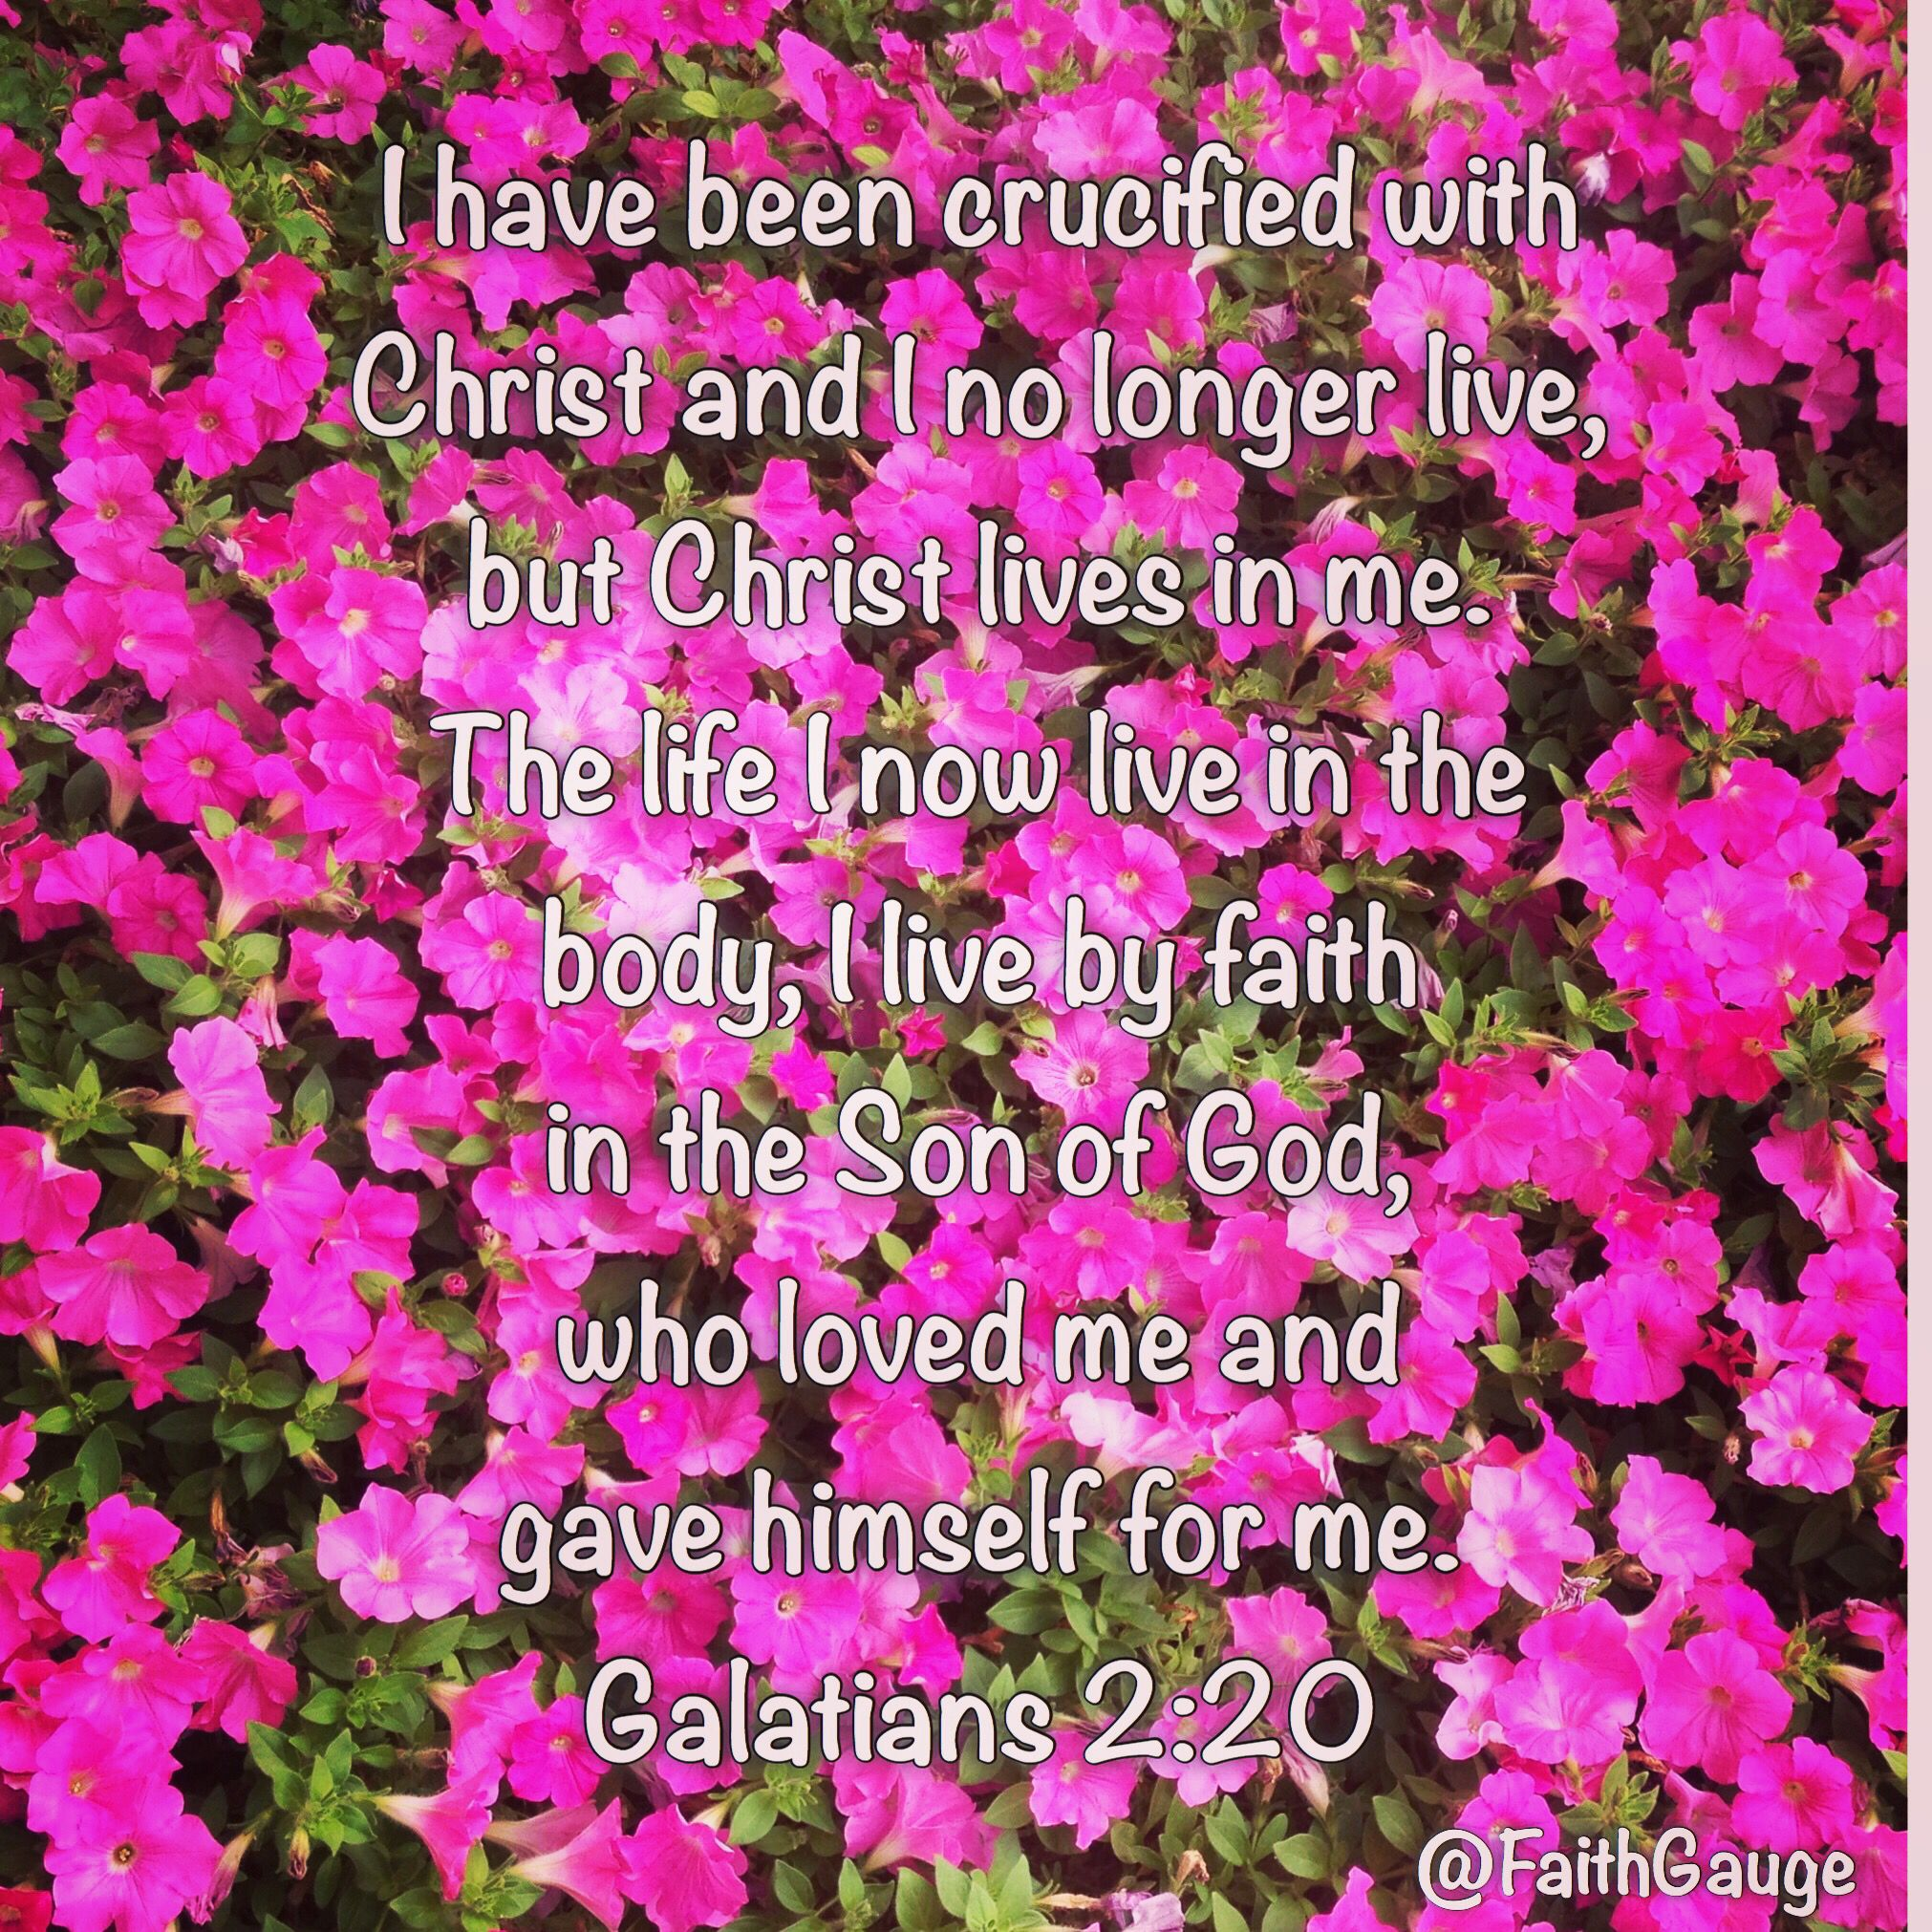 Galatians 2 20 NIV Paul says we should live by faith in Jesus